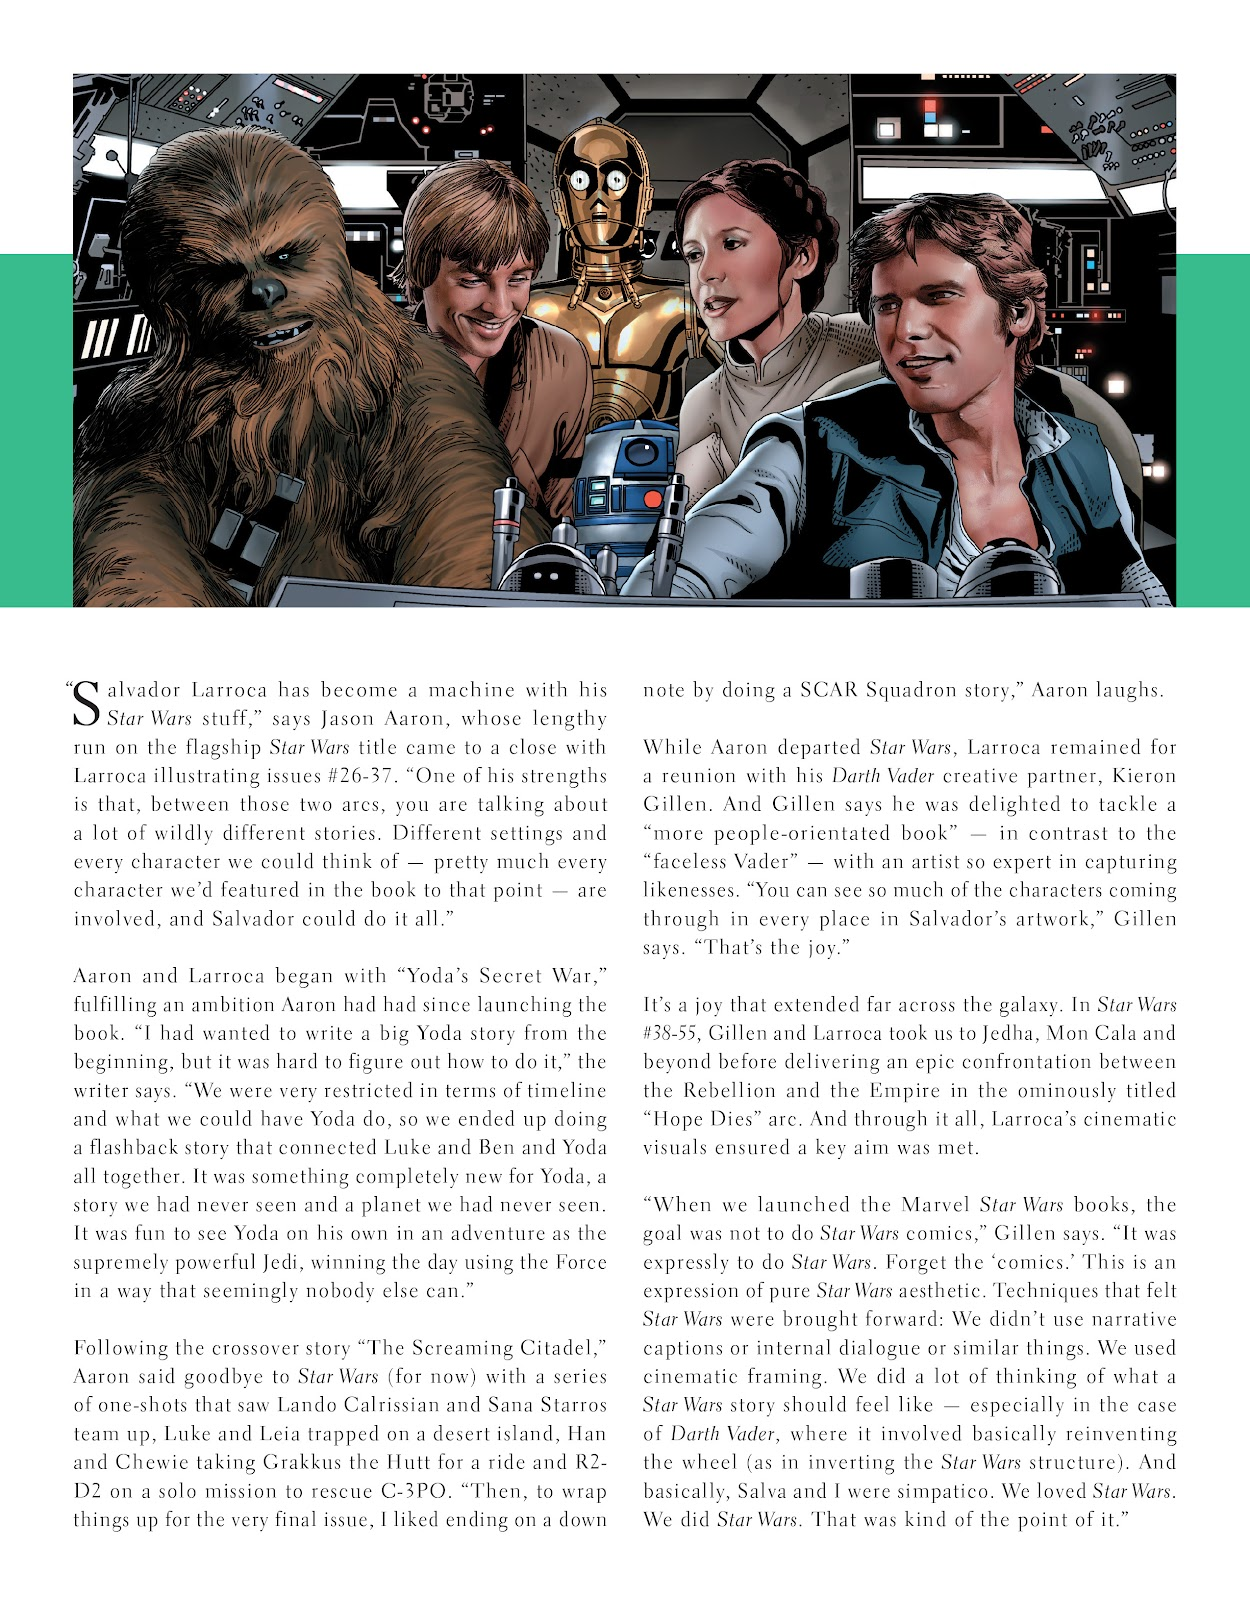 Read online The Marvel Art of Star Wars comic -  Issue # TPB (Part 2) - 8